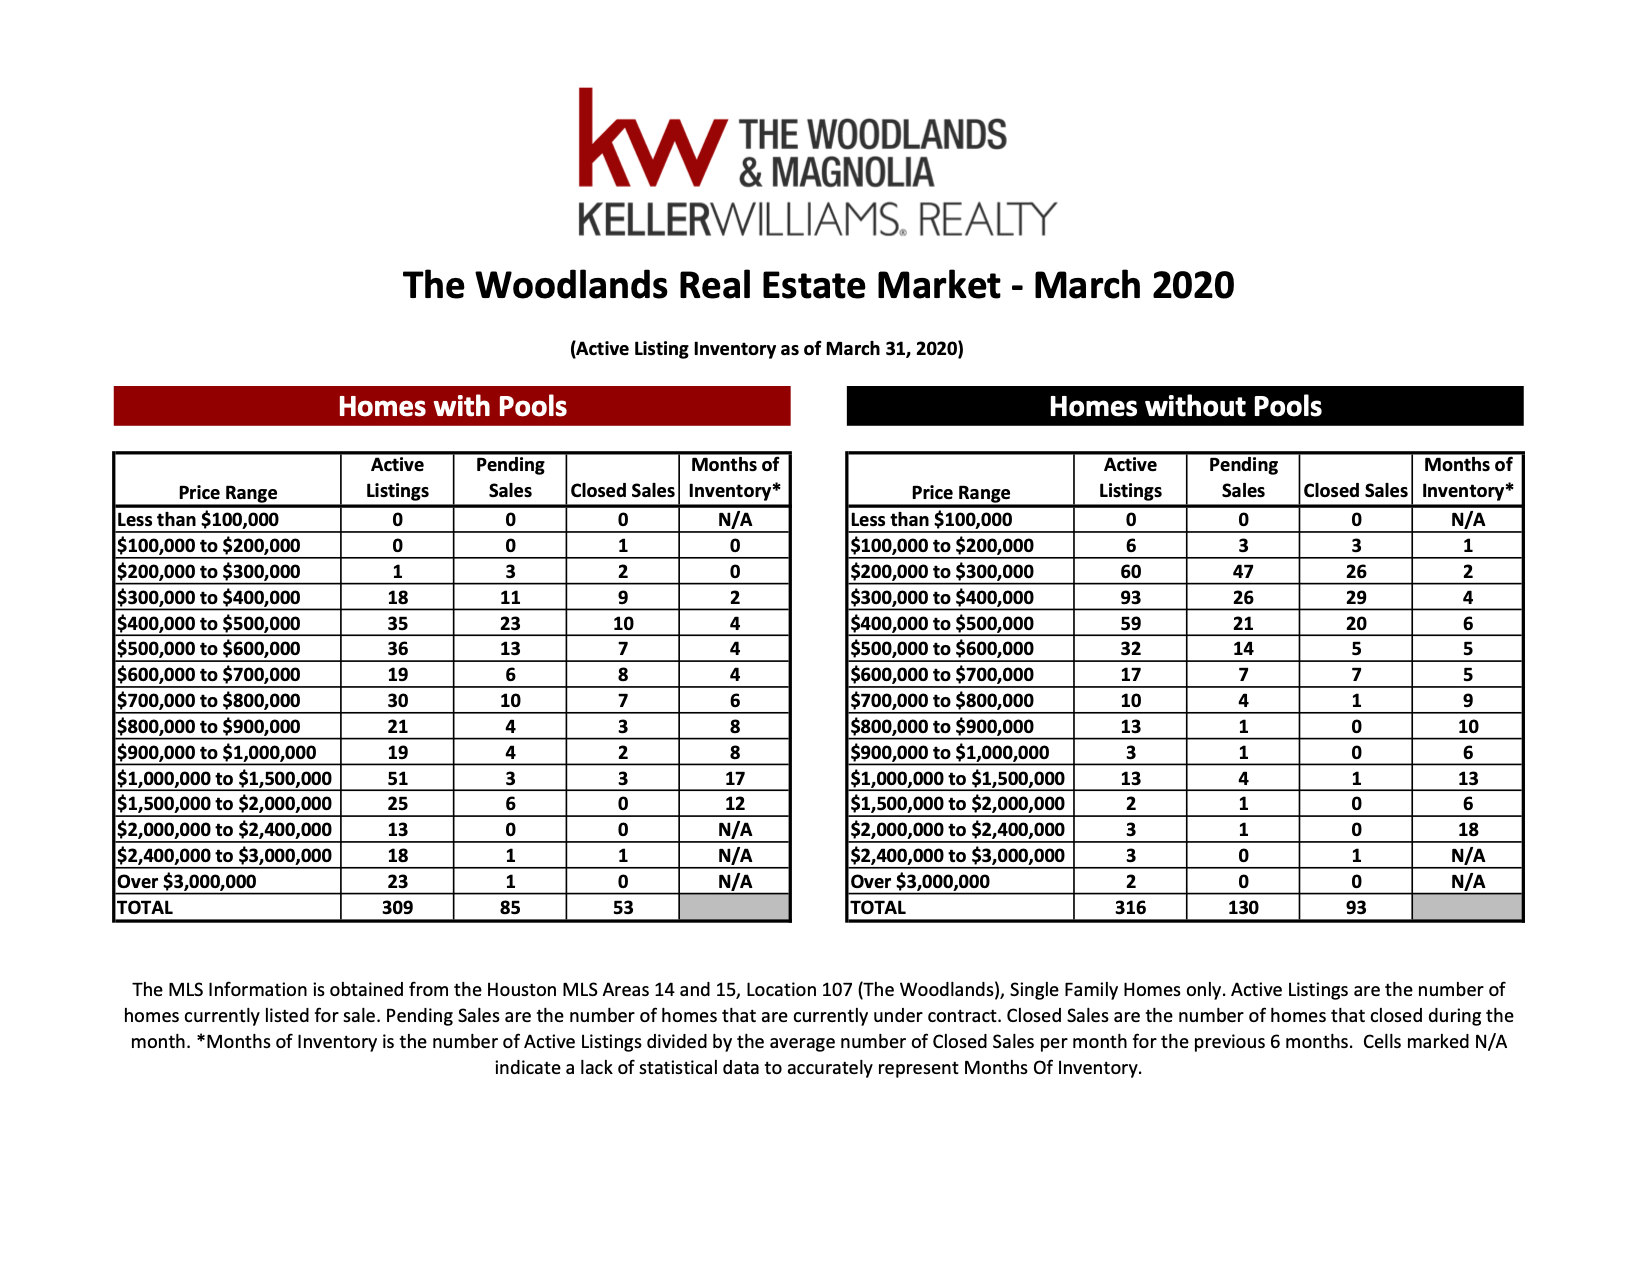 , March 2020 MarketWatch Report – The Woodlands, KW Woodlands